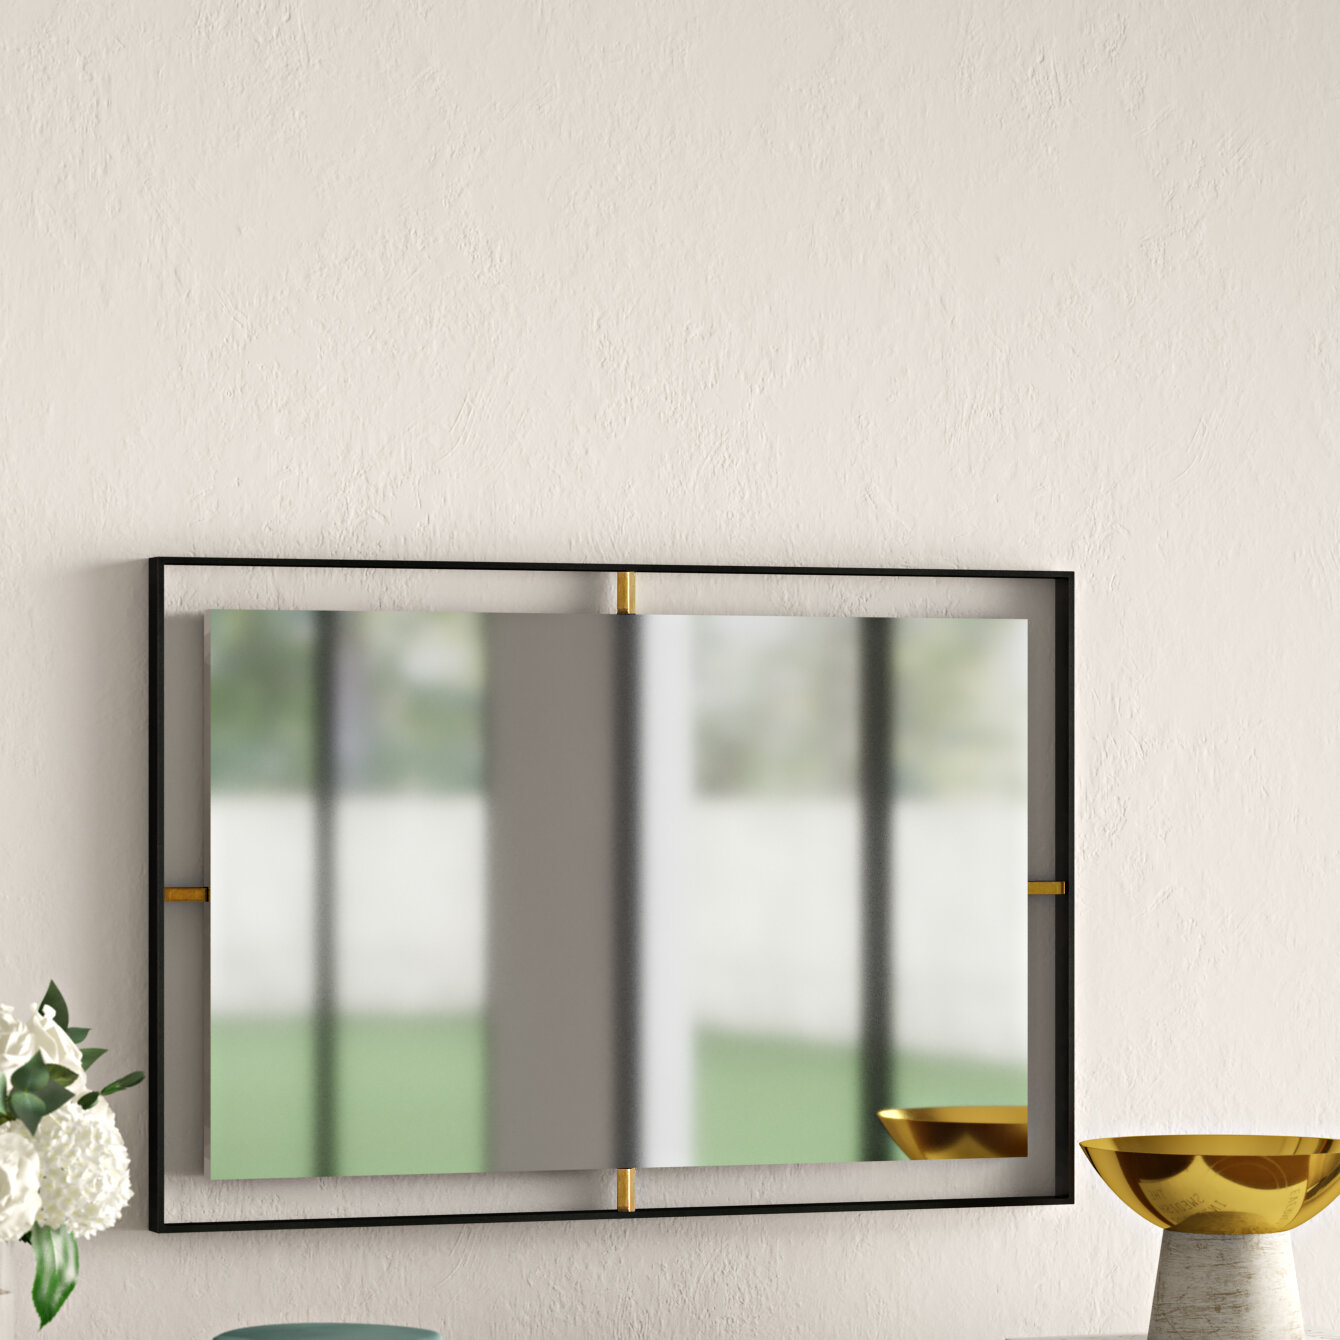 Wolbert Industrial Rectangle Accent Mirror Inside Rectangle Accent Mirrors (View 2 of 20)